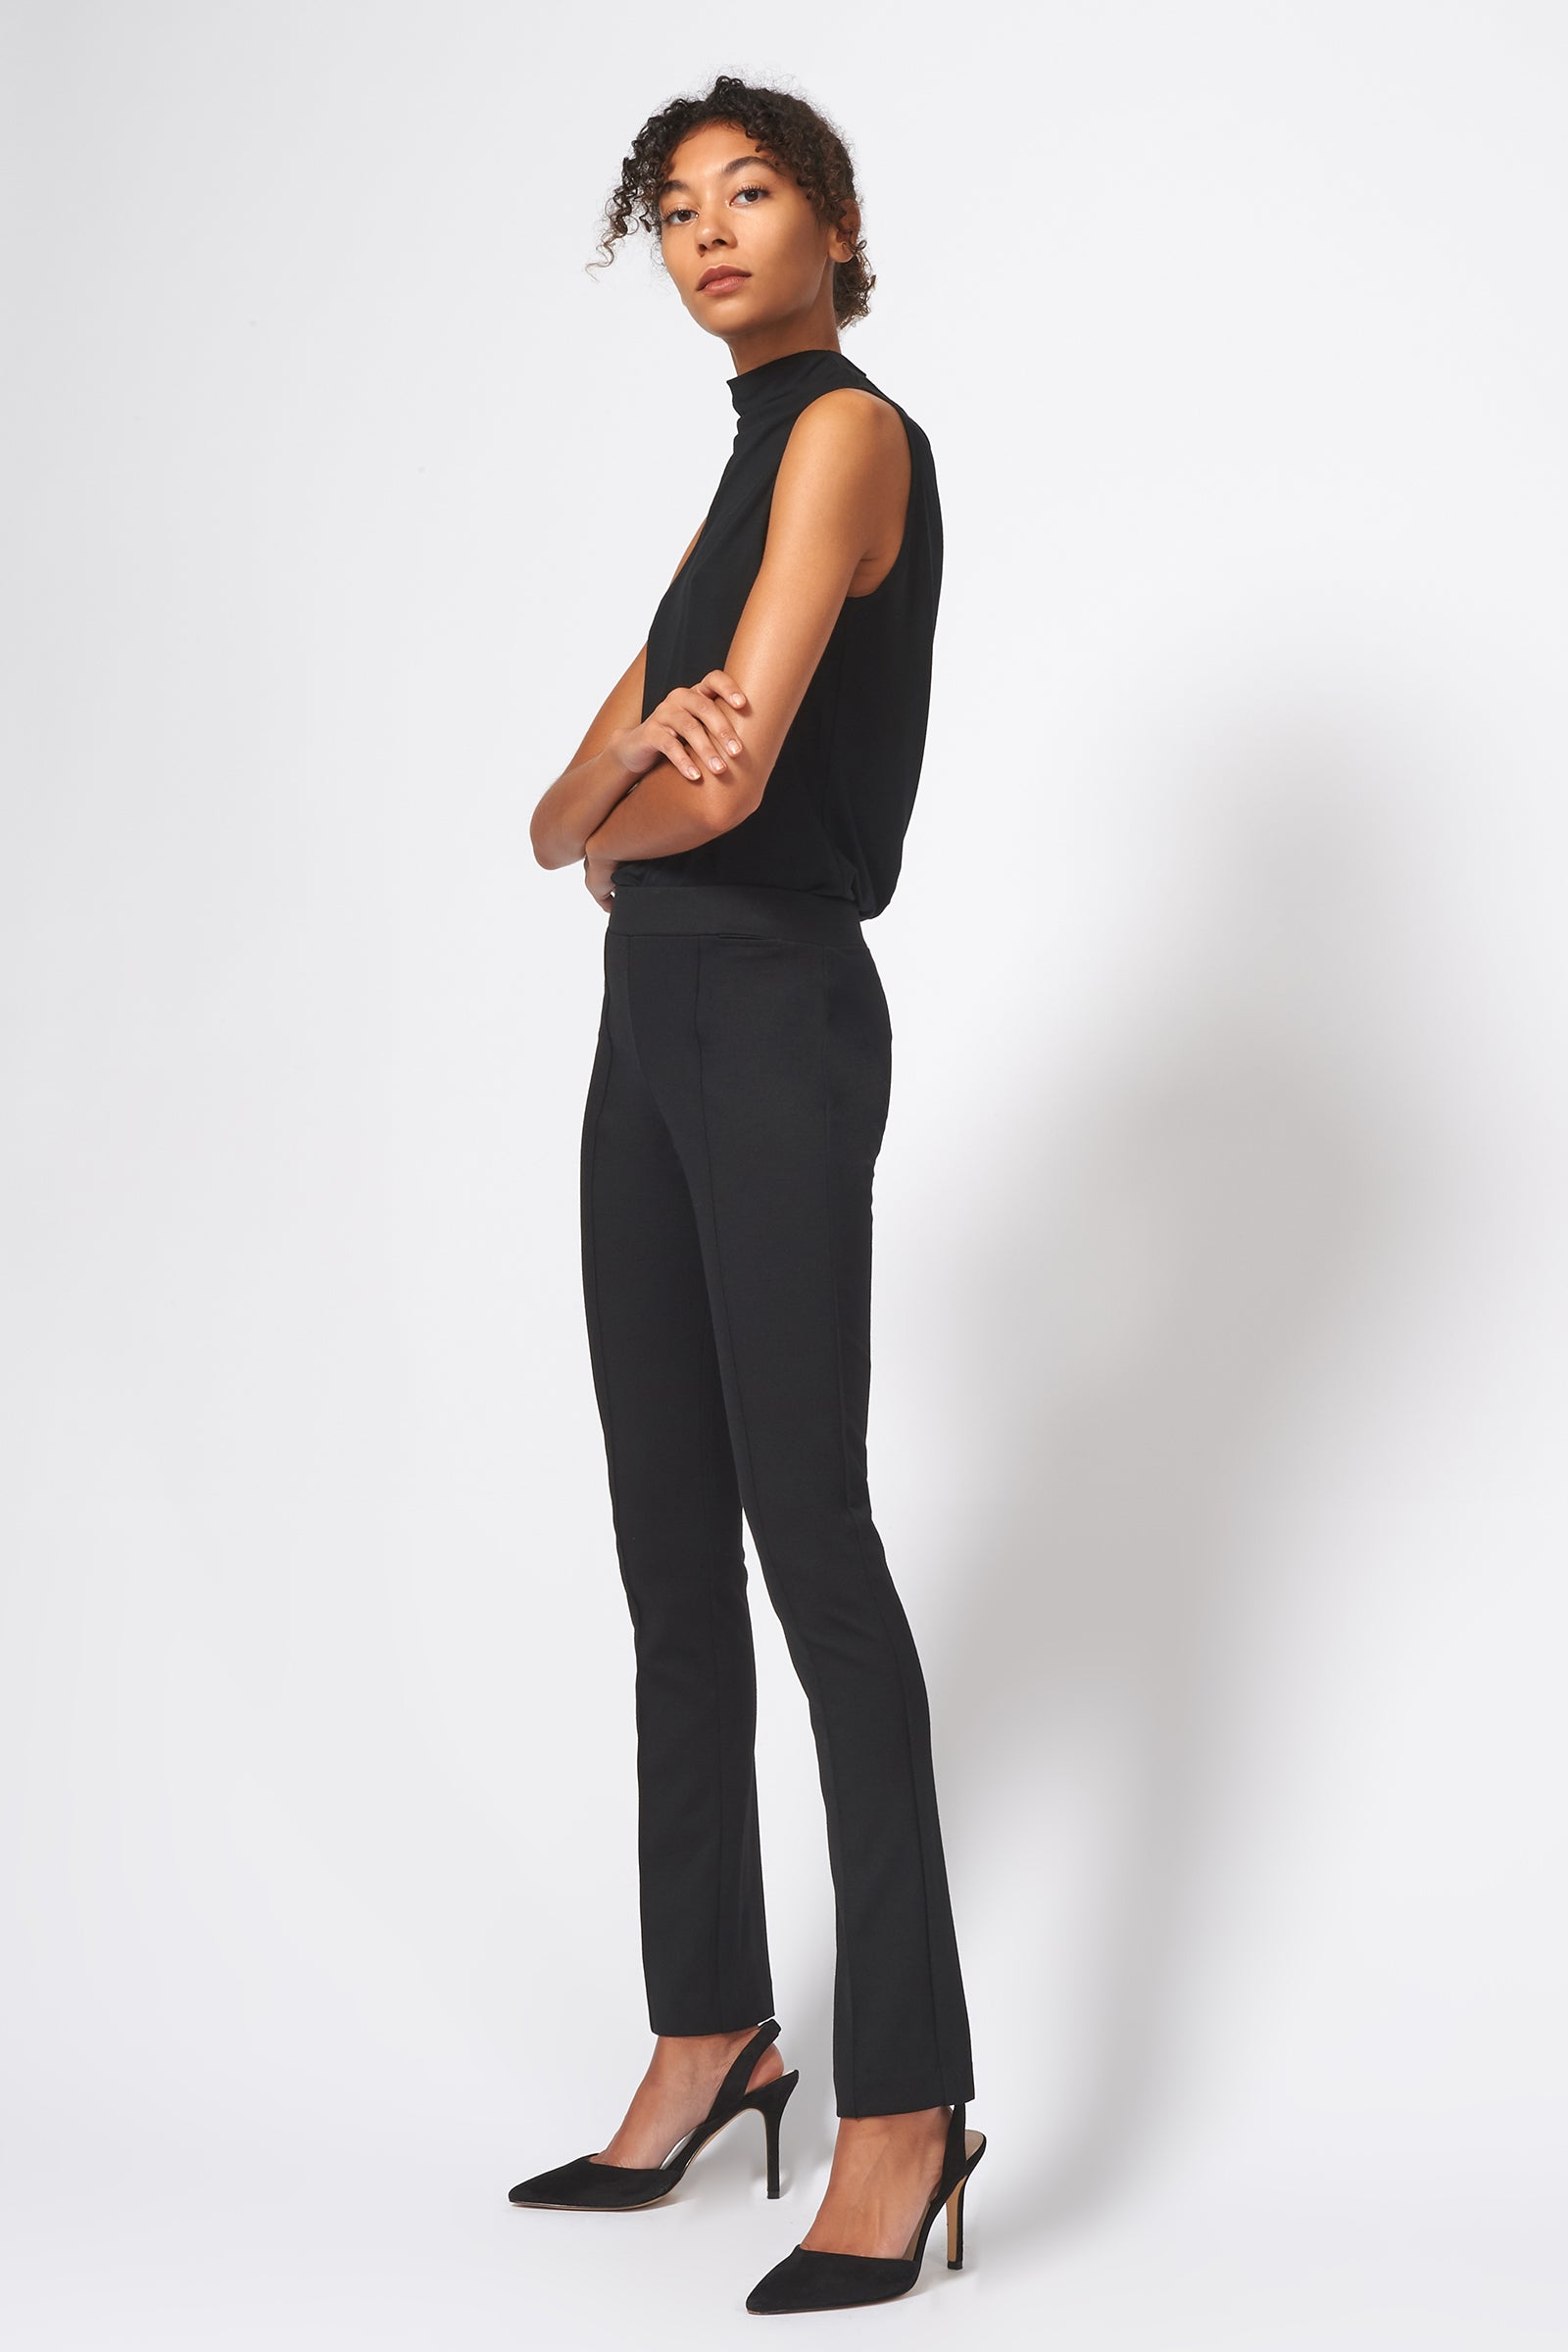 Kal Rieman Pintuck Ponte Straight Leg Pant in Black on Model Full Side View